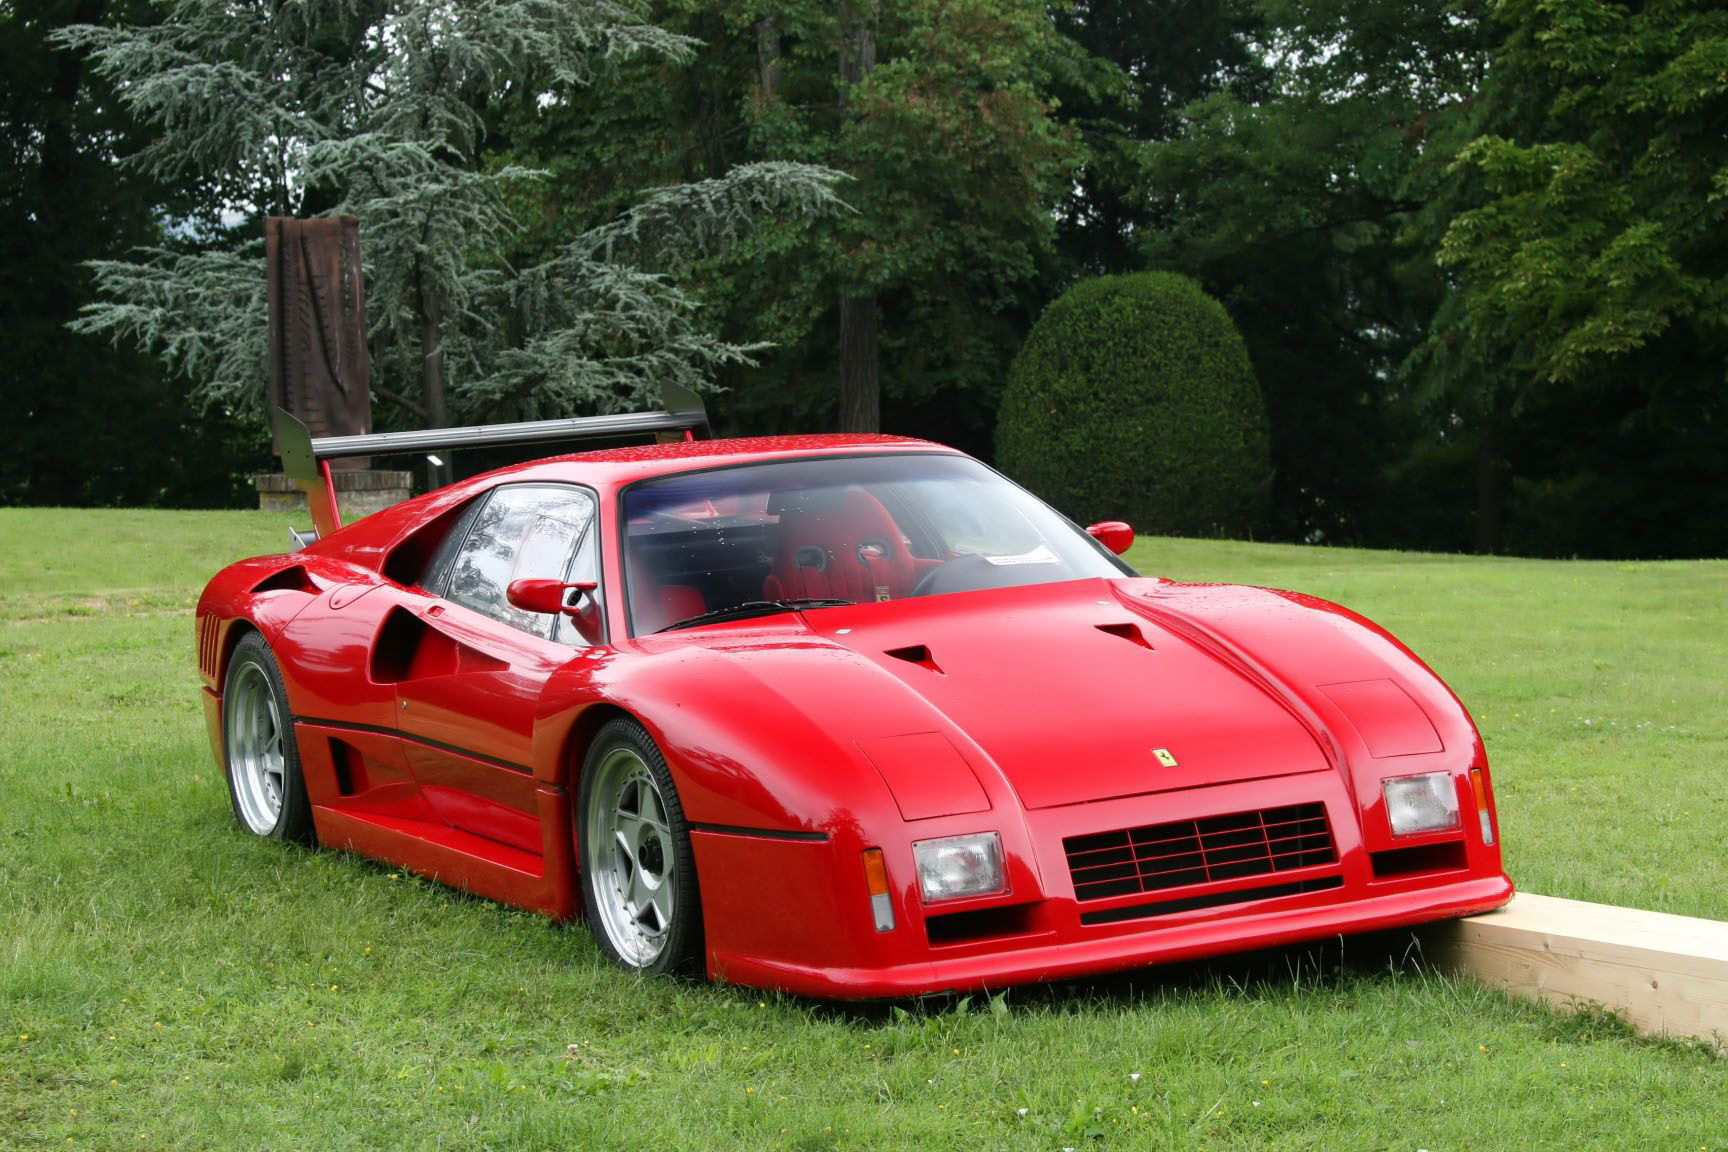 1986 ferrari 288 gto evoluzione 024 5243. Black Bedroom Furniture Sets. Home Design Ideas